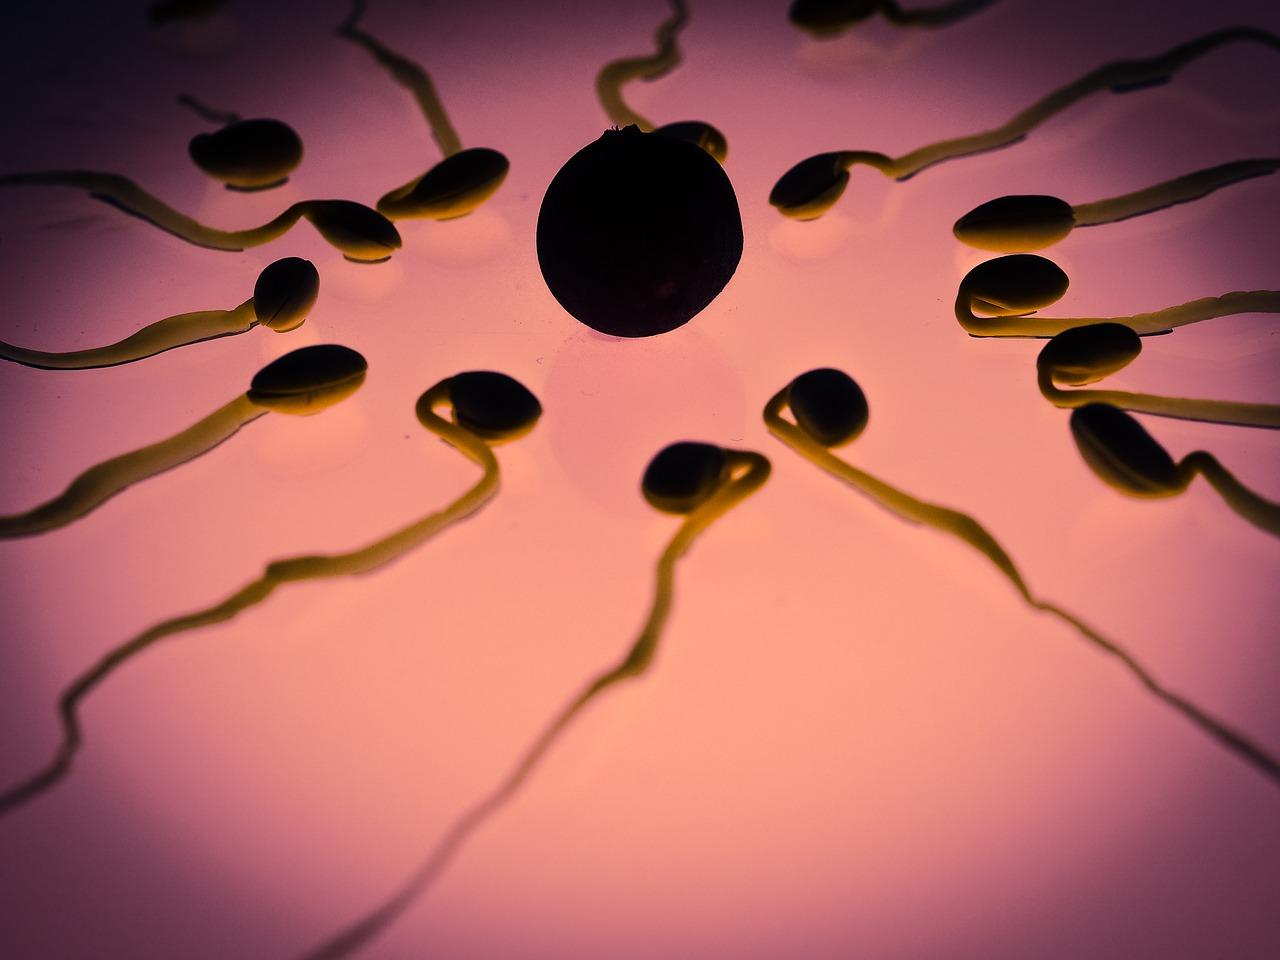 new study reveals egg cells are very choosy when it comes to the sperm that will fertilize it